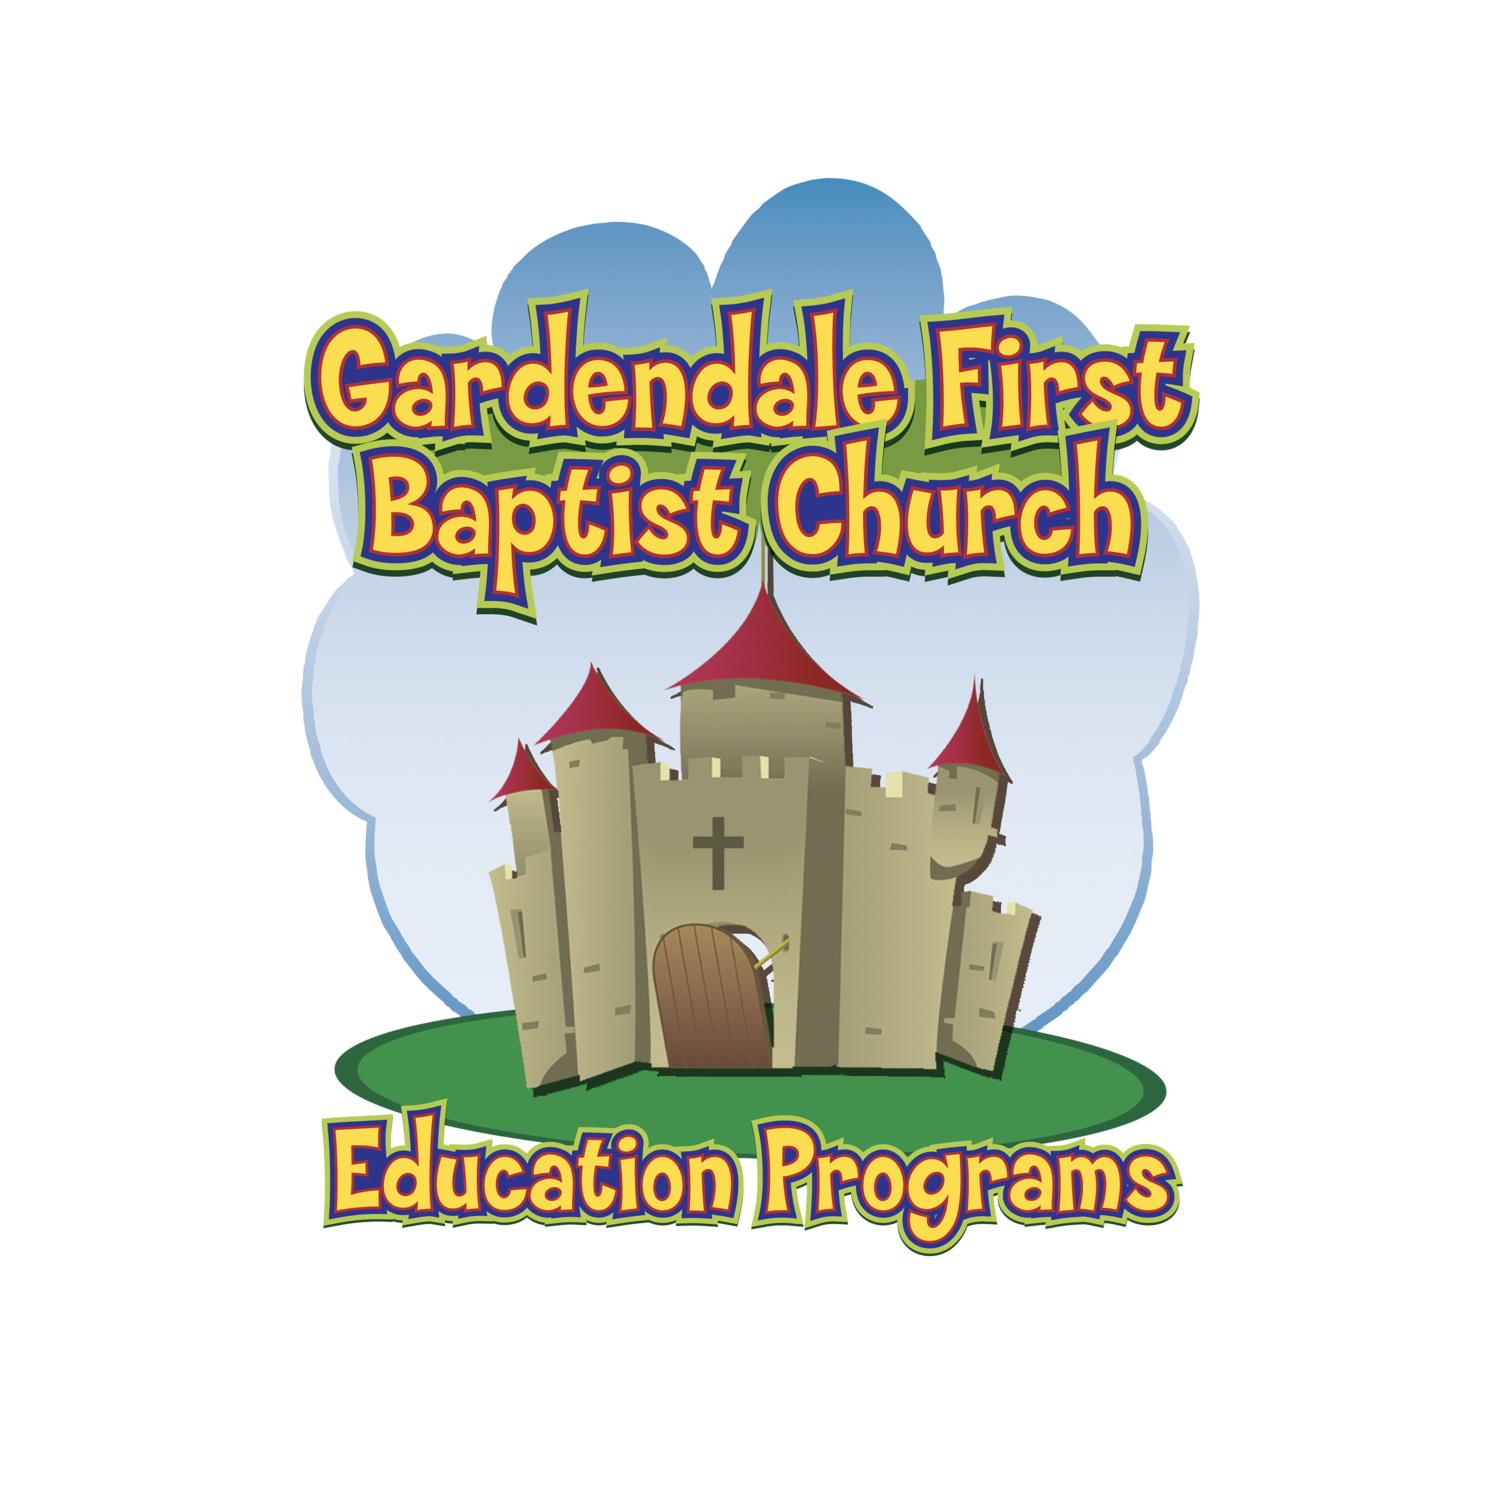 GFBC Education Programs